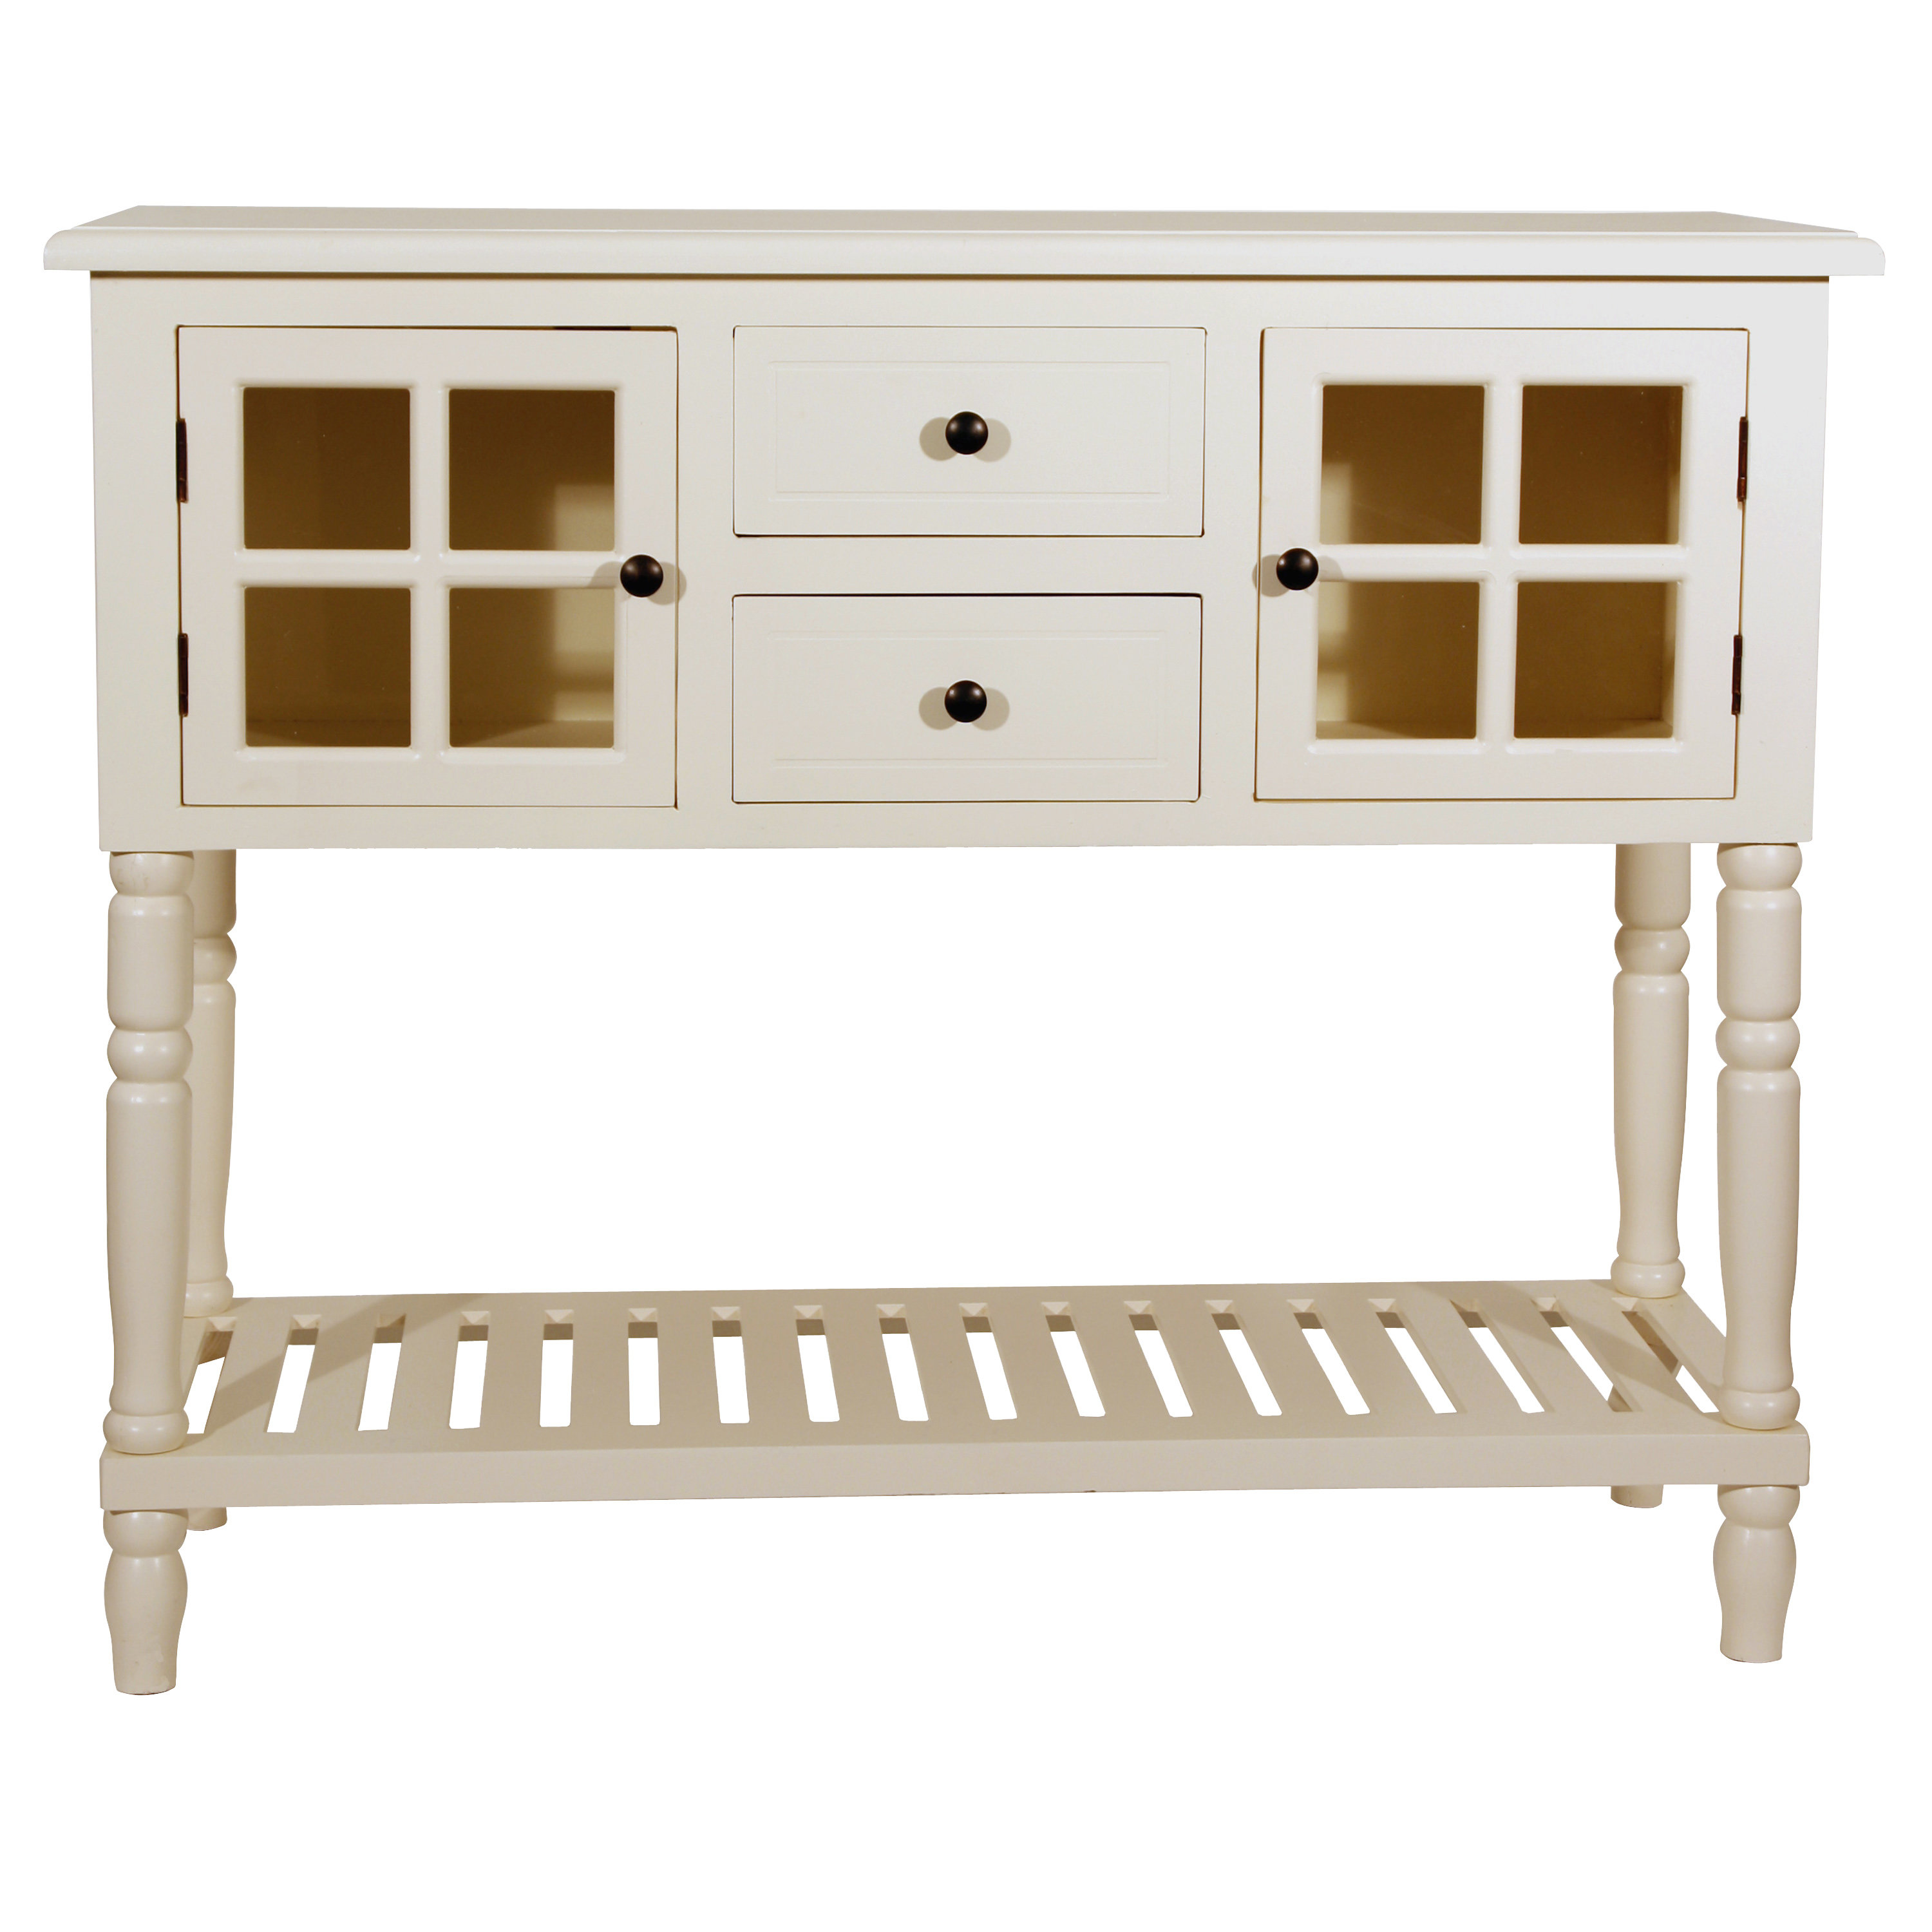 antique white console table decarlo room essentials accent quickview piece bistro set hobby lobby outdoor furniture laminate door threshold black and knotty pine bar stools round